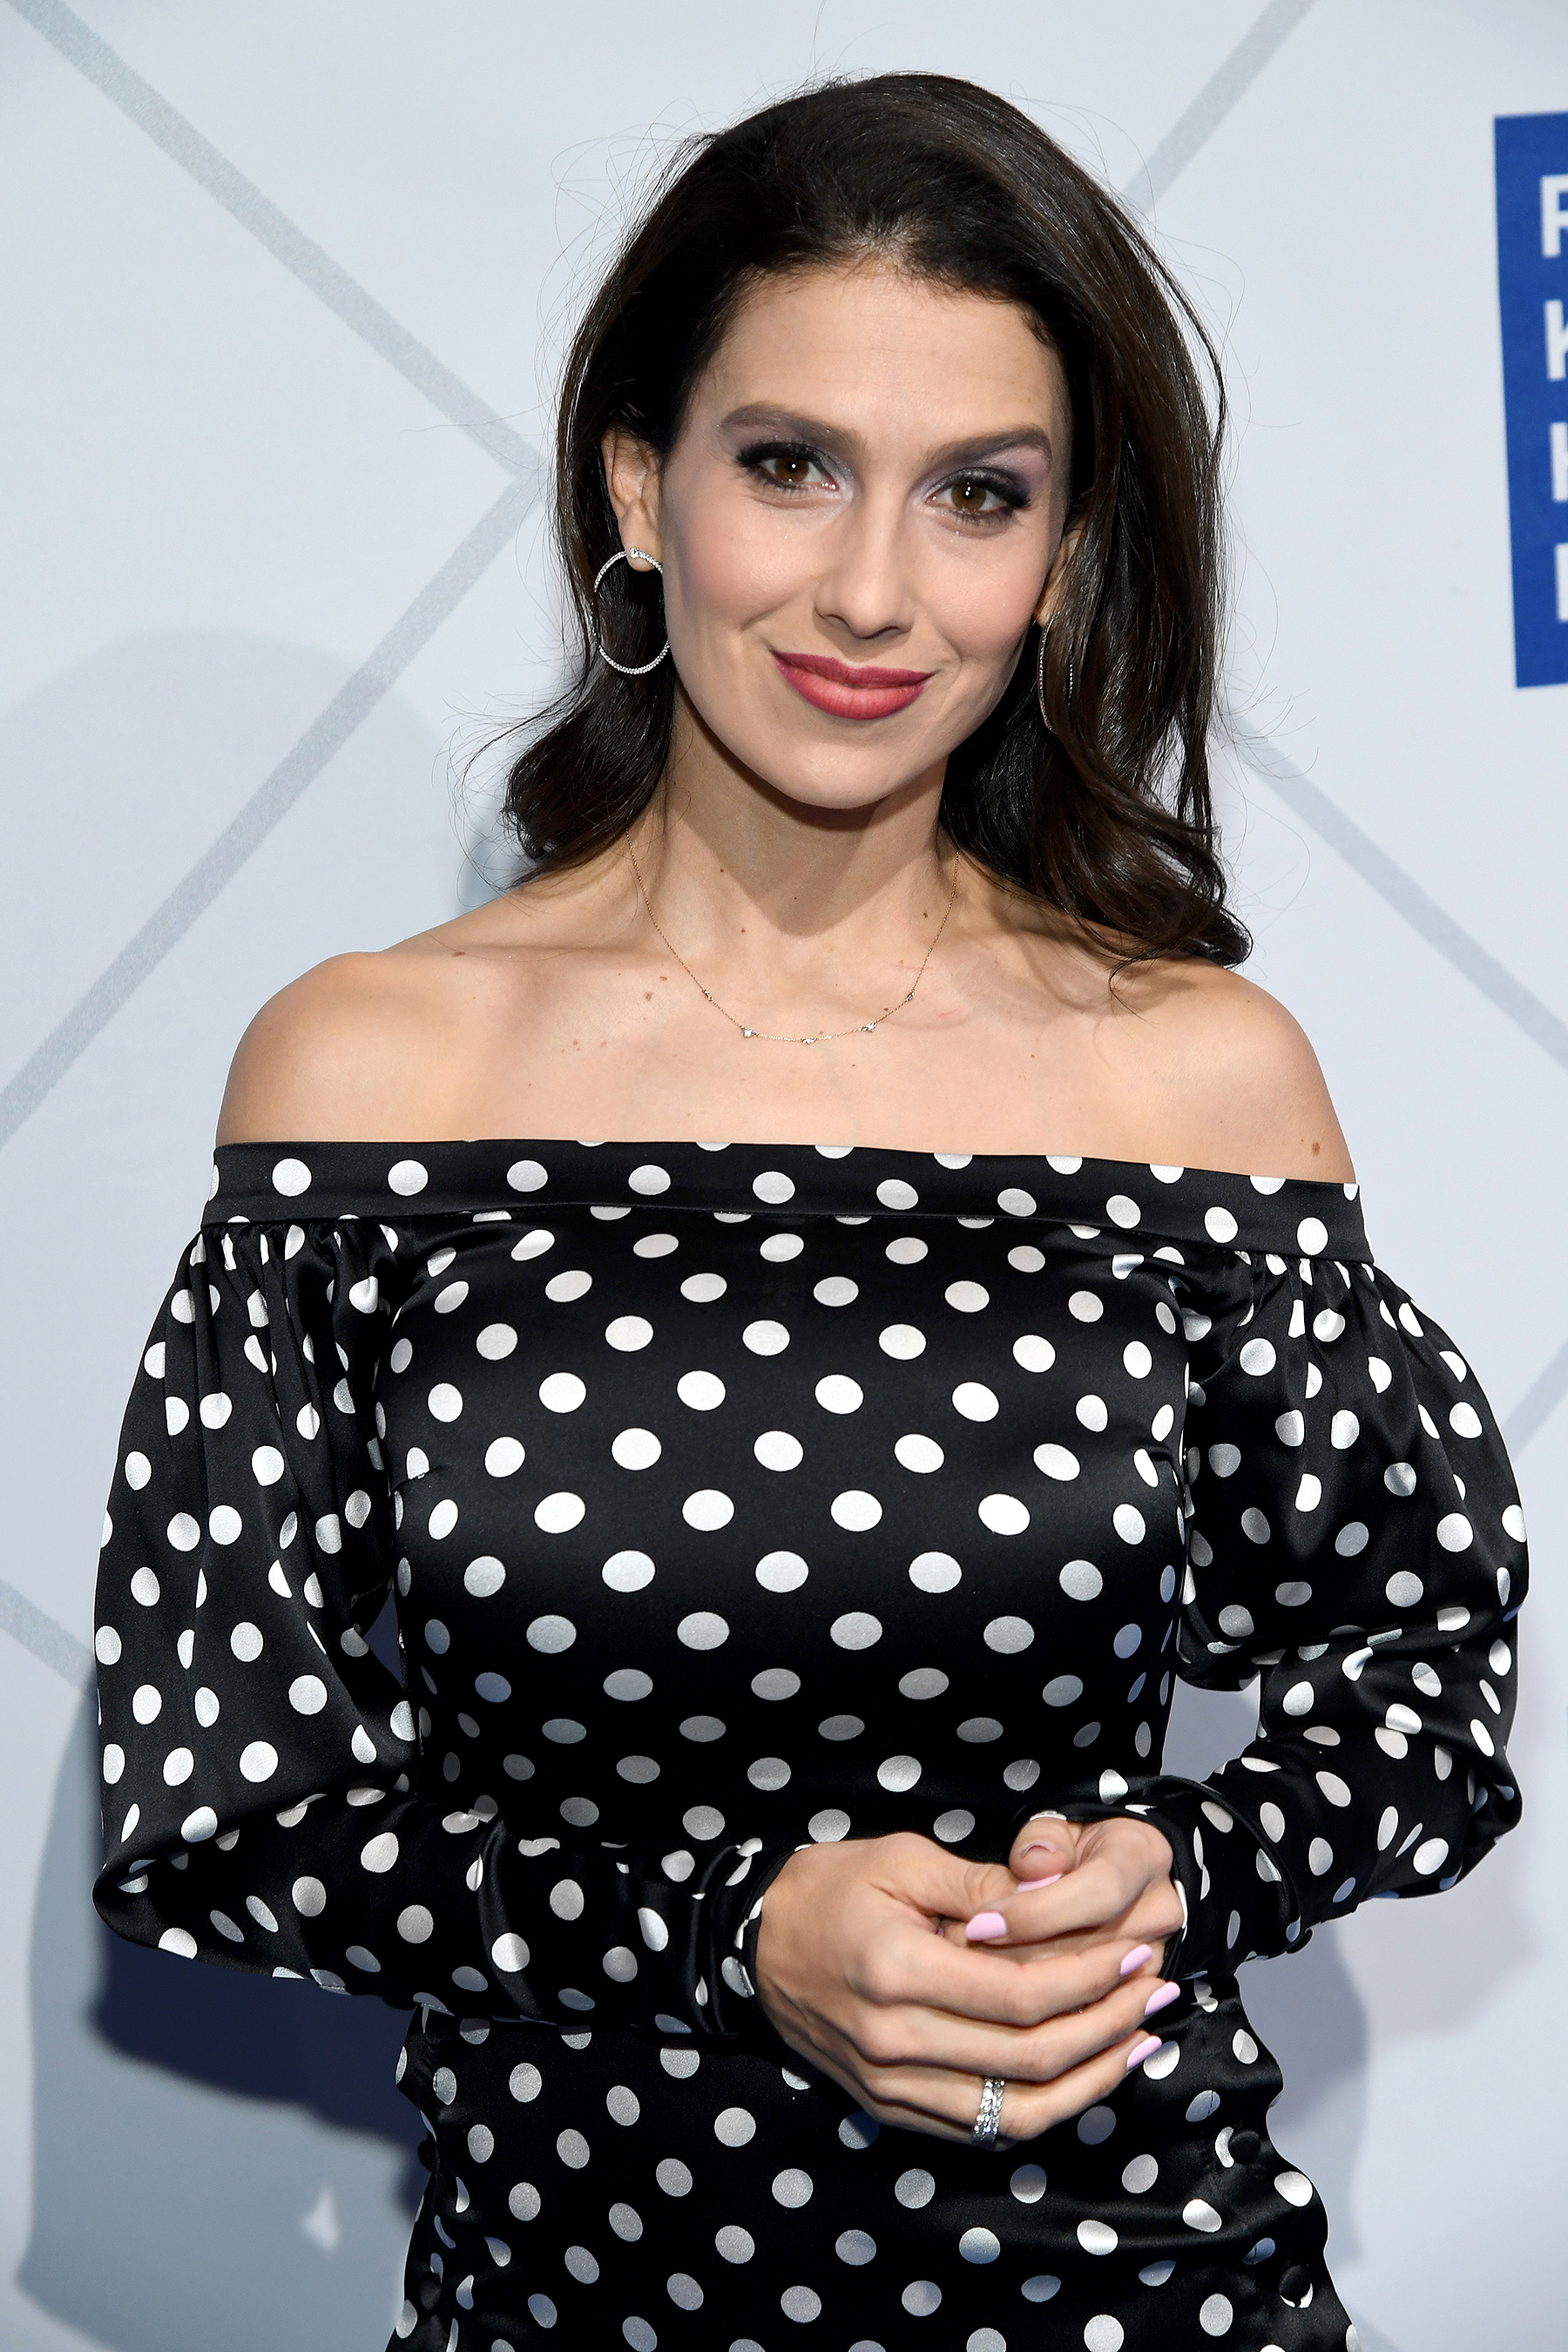 Hilaria Baldwin Confirms She Has Suffered a Miscarriage: 'There Was No Heartbeat Today at My Scan'